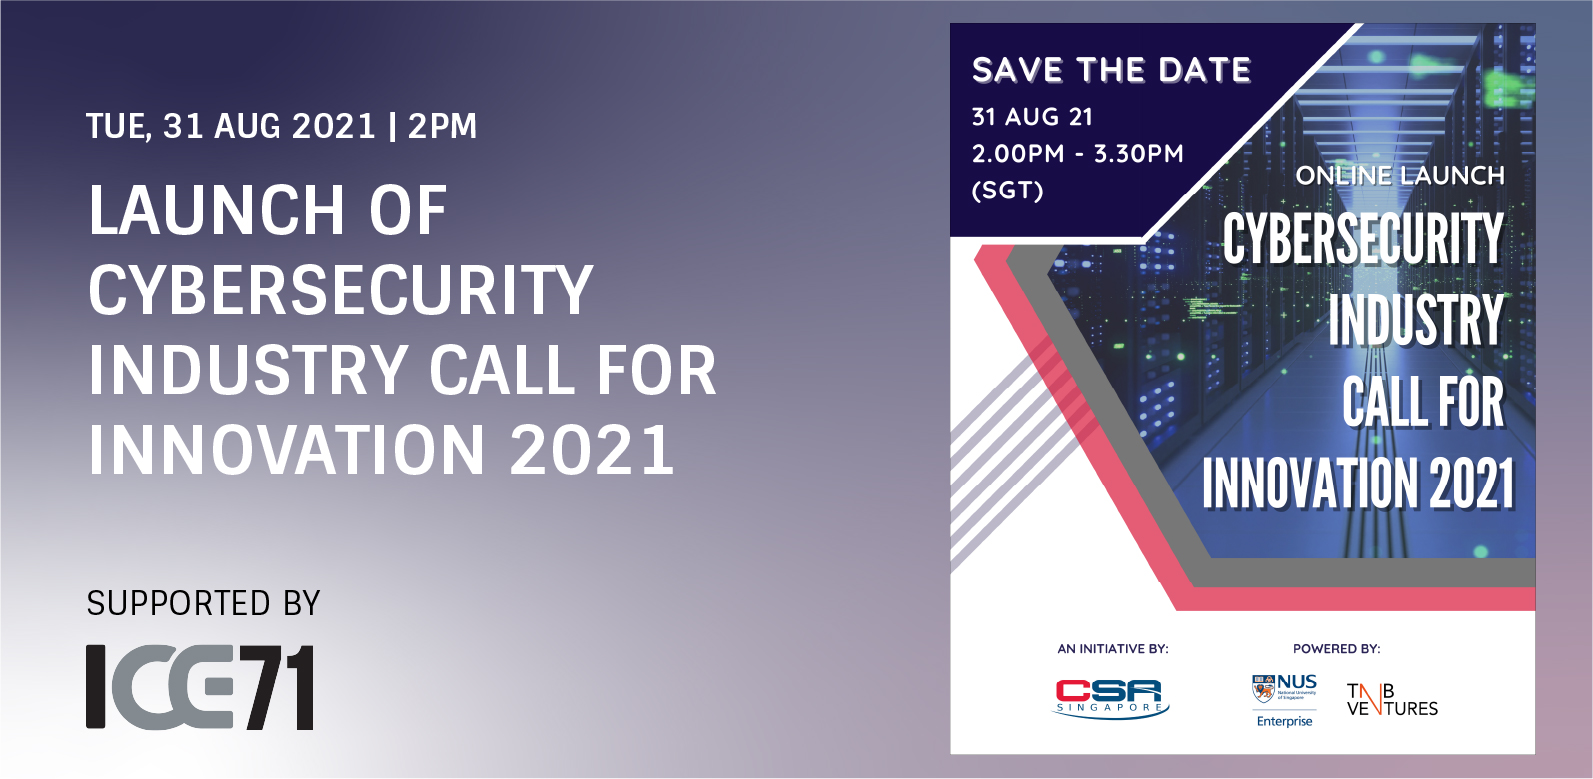 Virtual Launch of Cybersecurity Industry Call for Innovation 2021